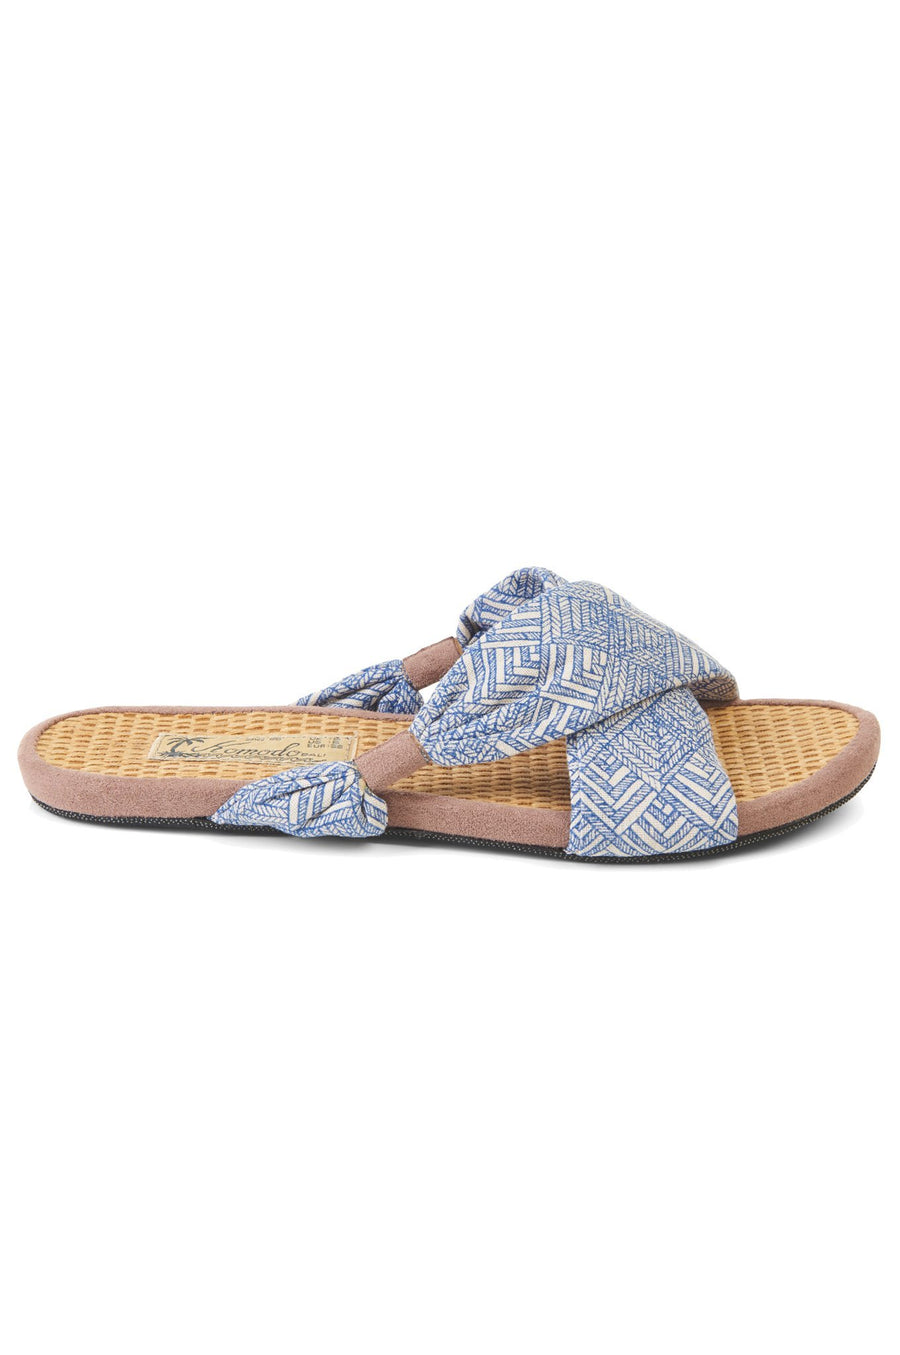 Helena Sandals Stormy - Issara Fairtrade